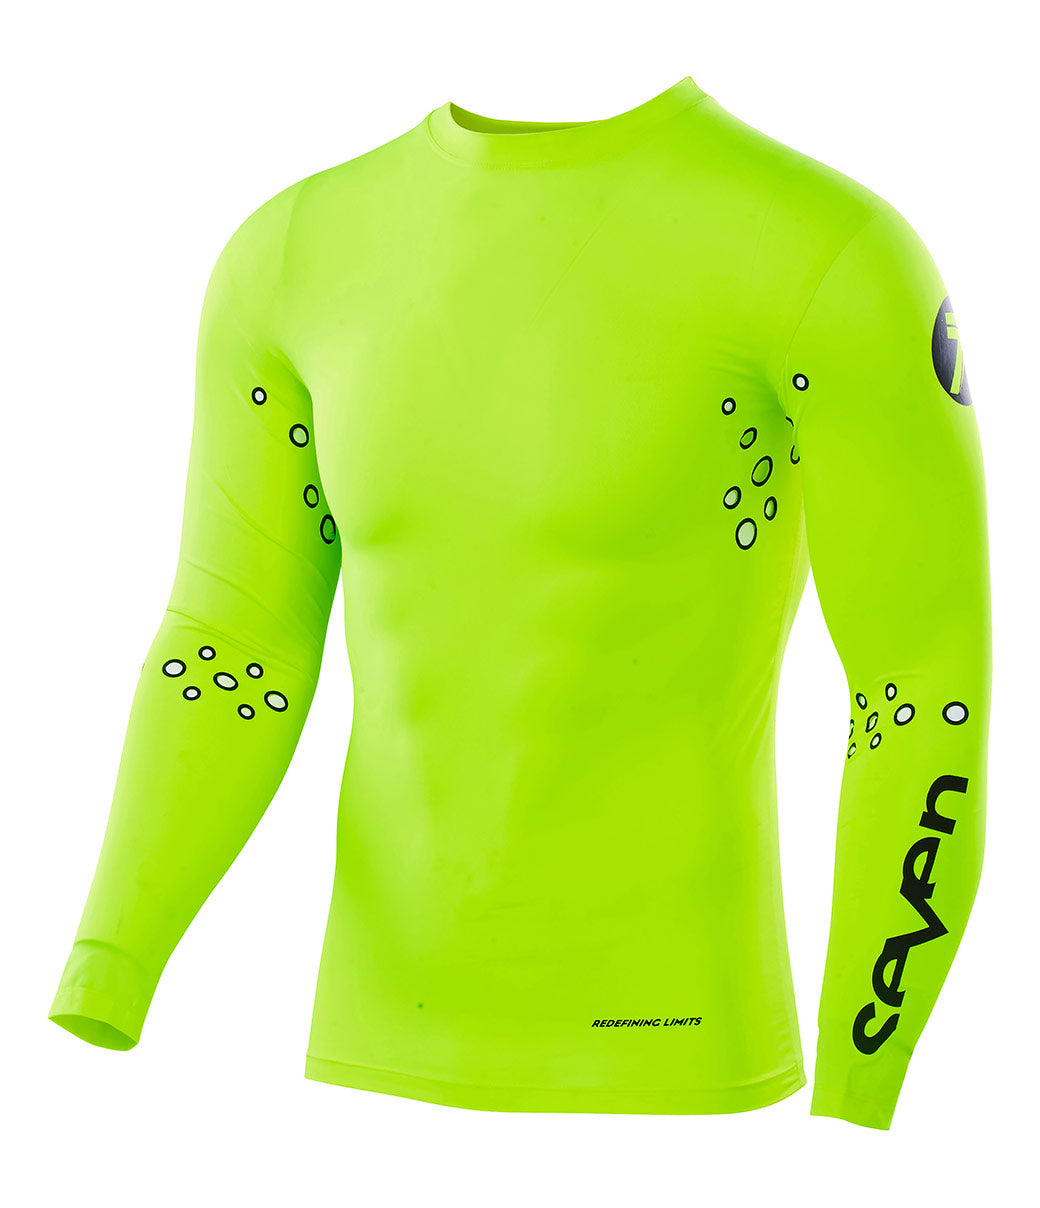 Zero Laser Cut Compression Jersey - Flow Yellow